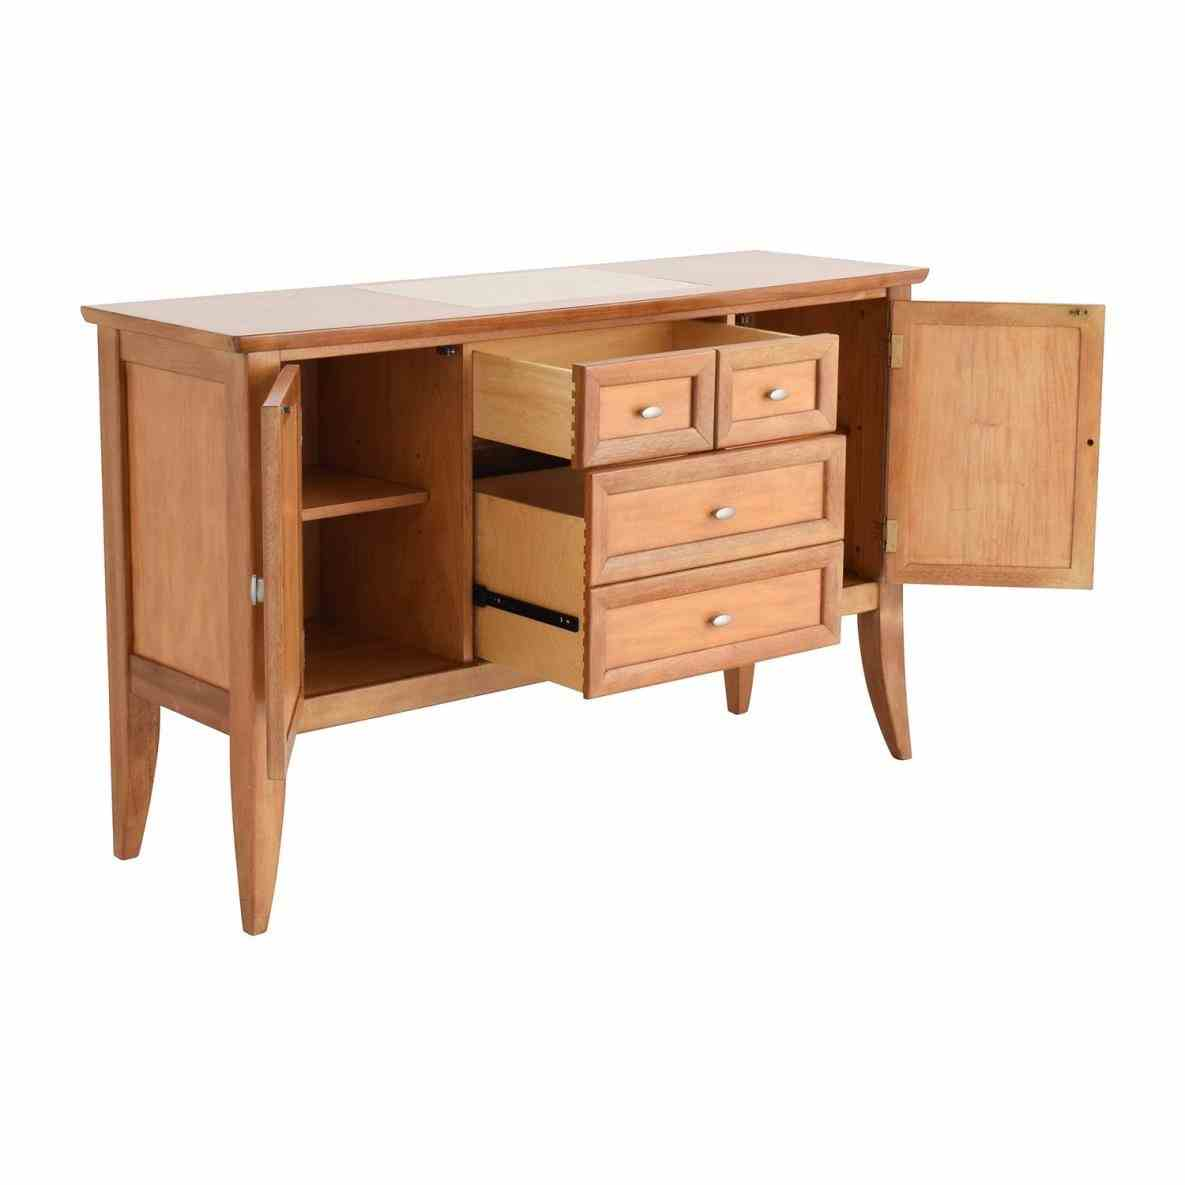 delectable outdoor sideboards and buffets solid wood cabinet metall walnut metal rustic patio cover white console home aluminum teak sideboard reclaimed dark burl alfresco